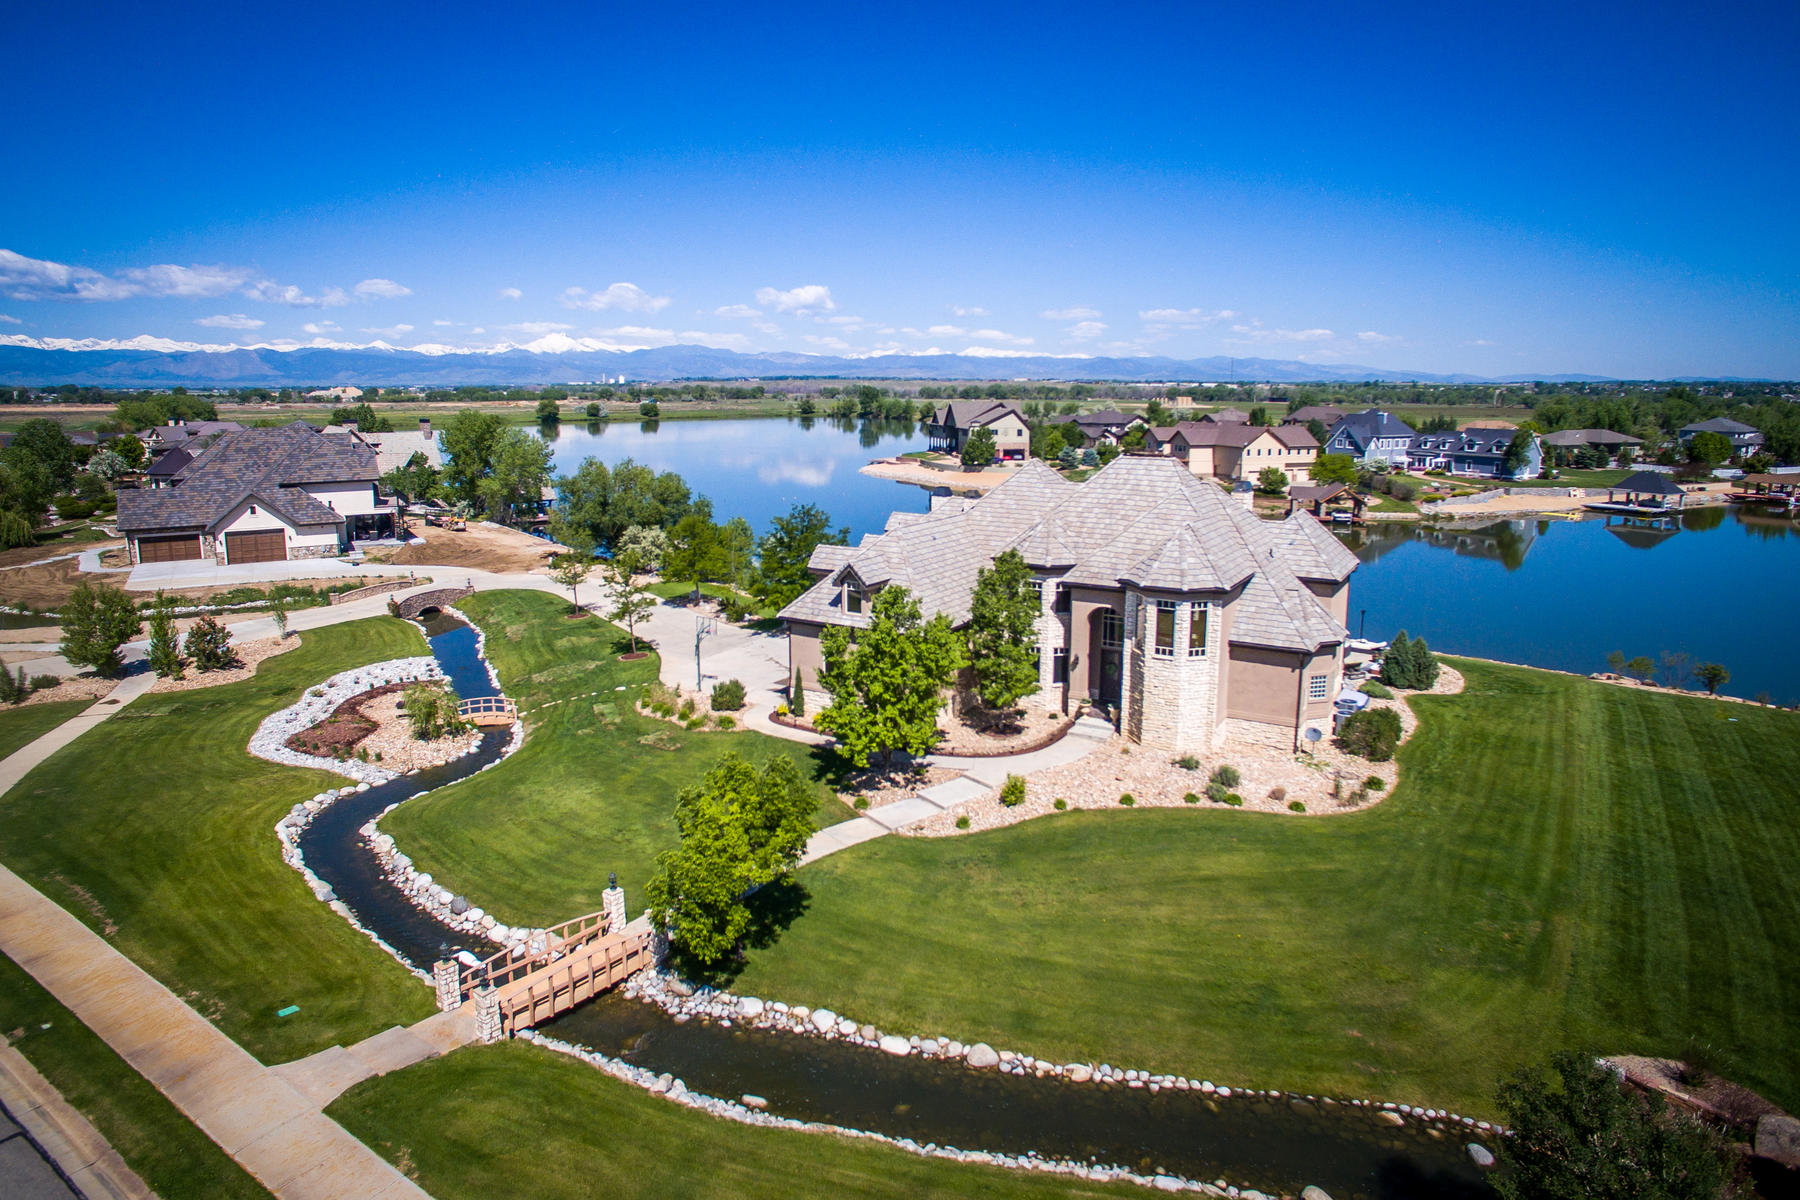 Single Family Home for Active at Private Lakefront Estate 9841 Shoreline Dr Longmont, Colorado 80504 United States